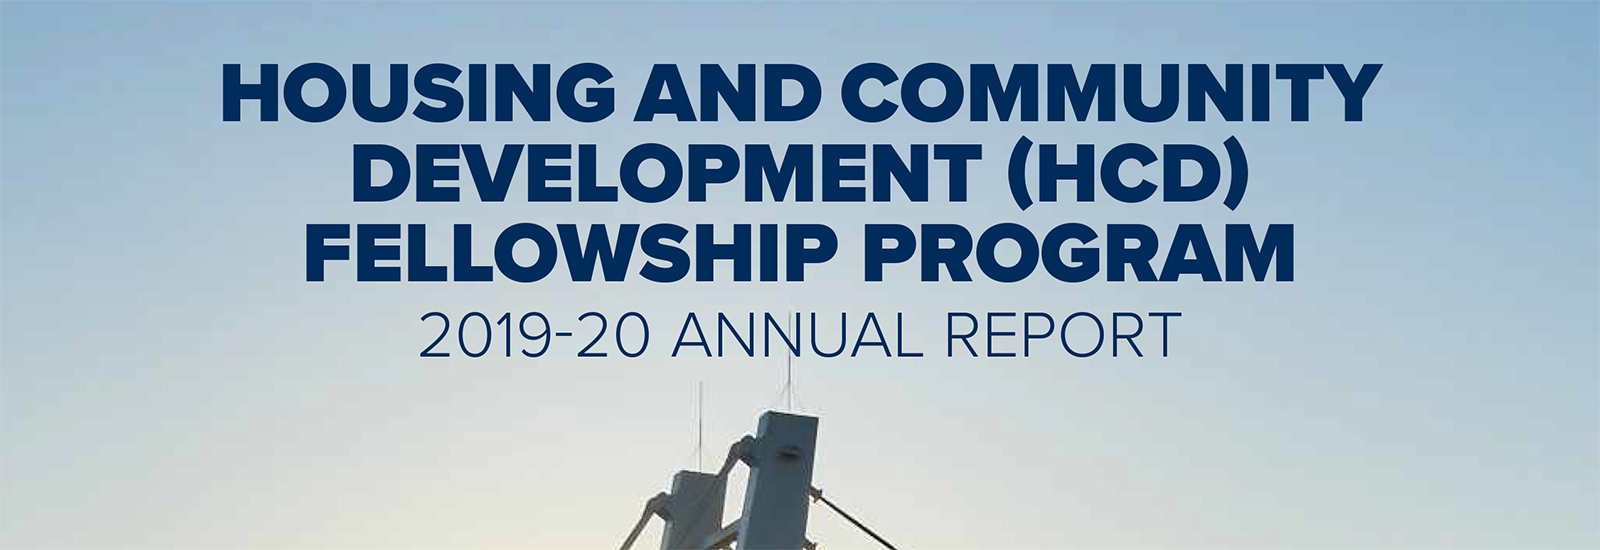 Download the HCD Annual Report